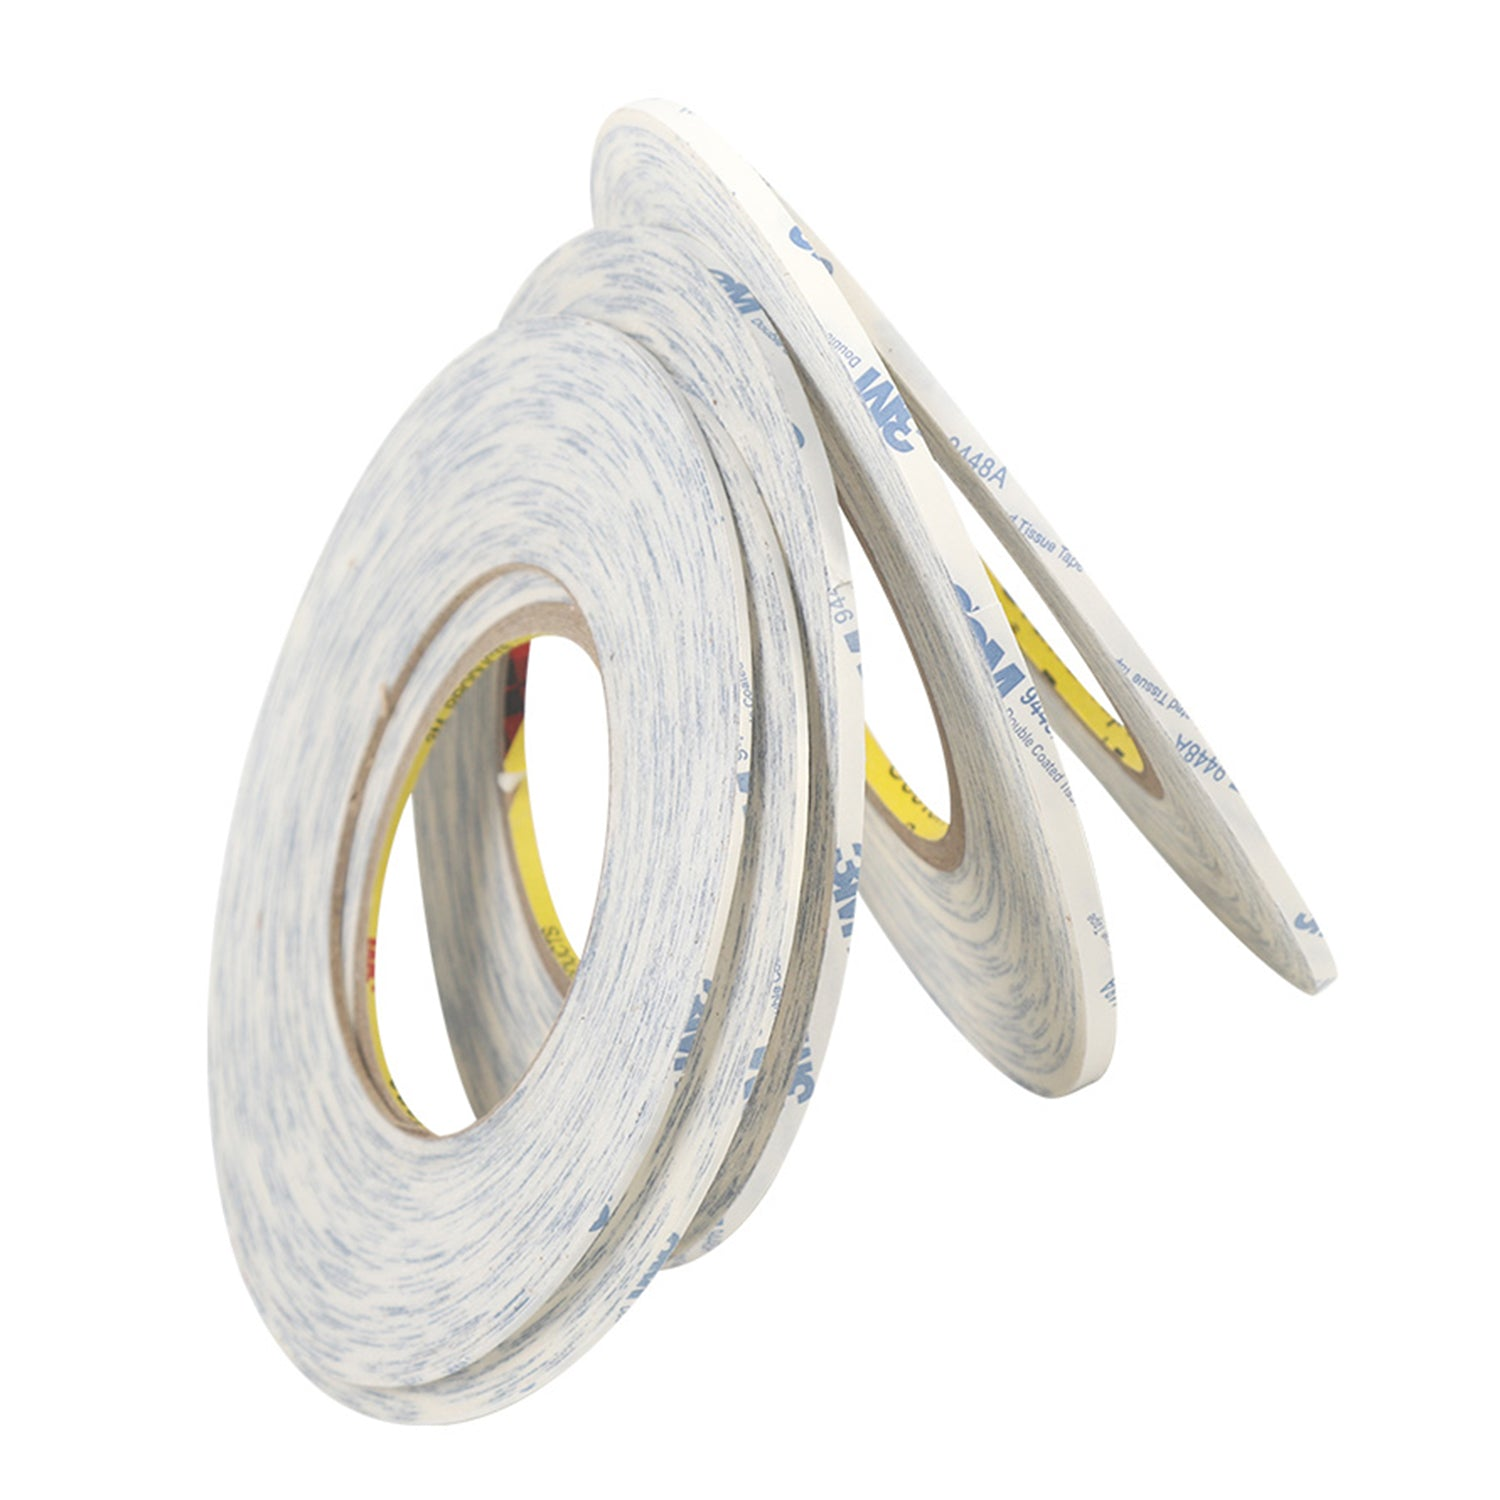 50meter 2/4/5mm Ruban double face American 3M 9448 Ultra-mince White Strong Collky Tape Bricolage Leathercraft Outils Navire standard